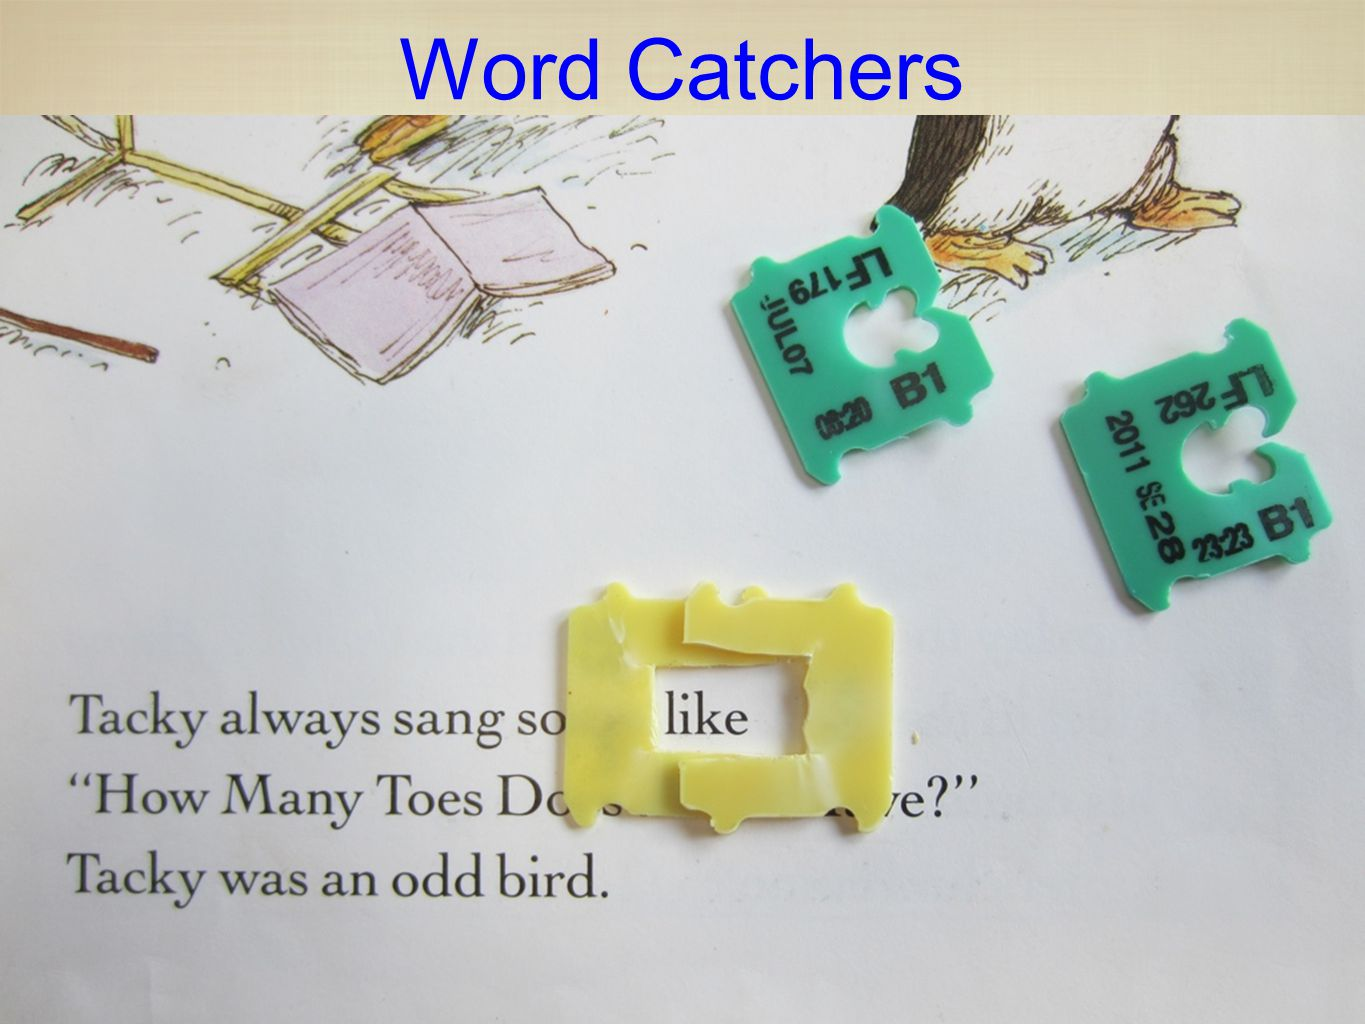 Word Catchers